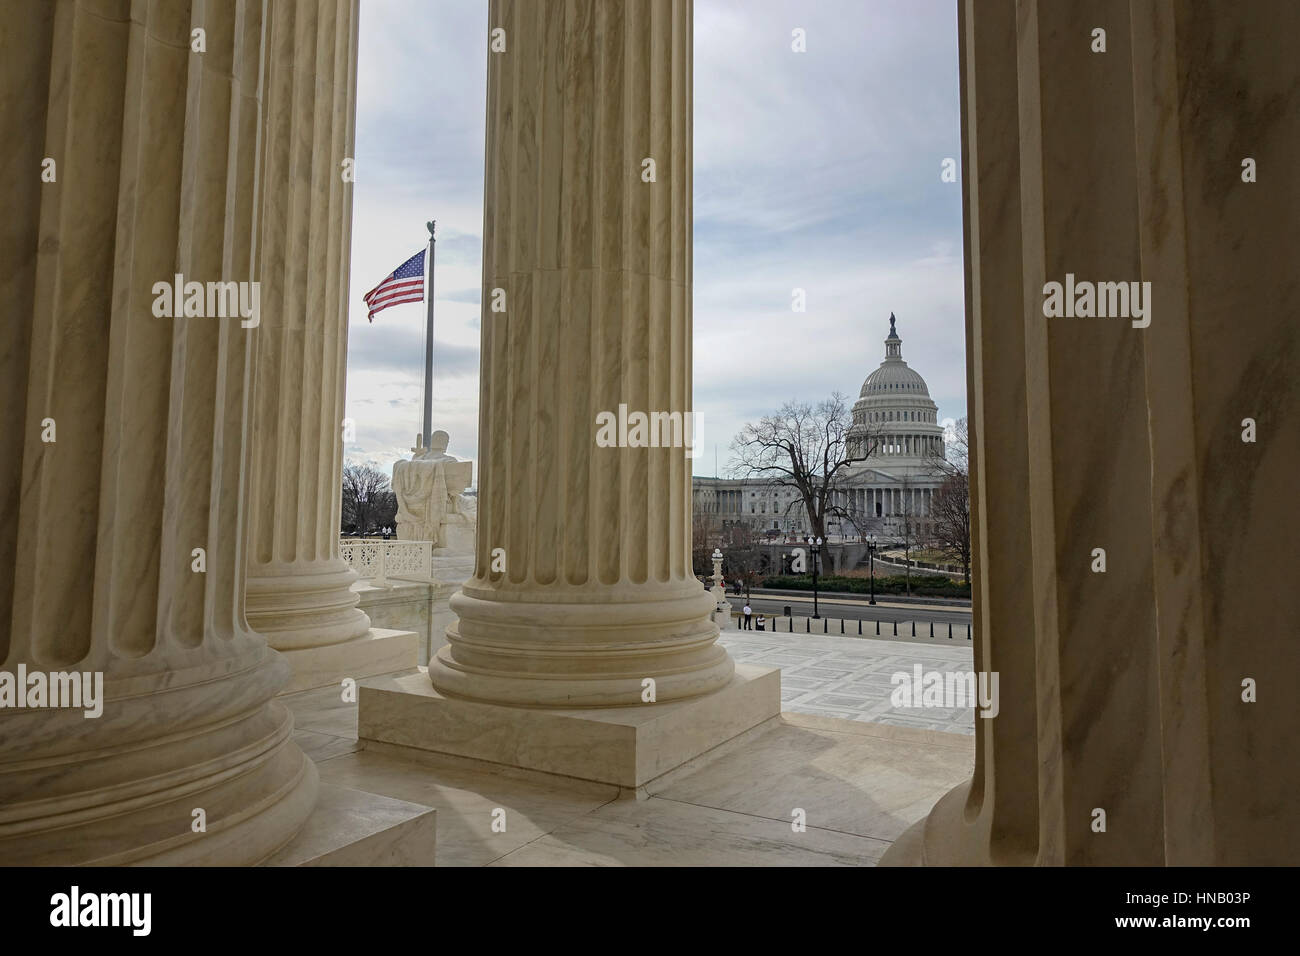 From portico of U.S. Supreme Court Building, view Capitol Building, home of the US Congress.  Flag flying. Washington, - Stock Image